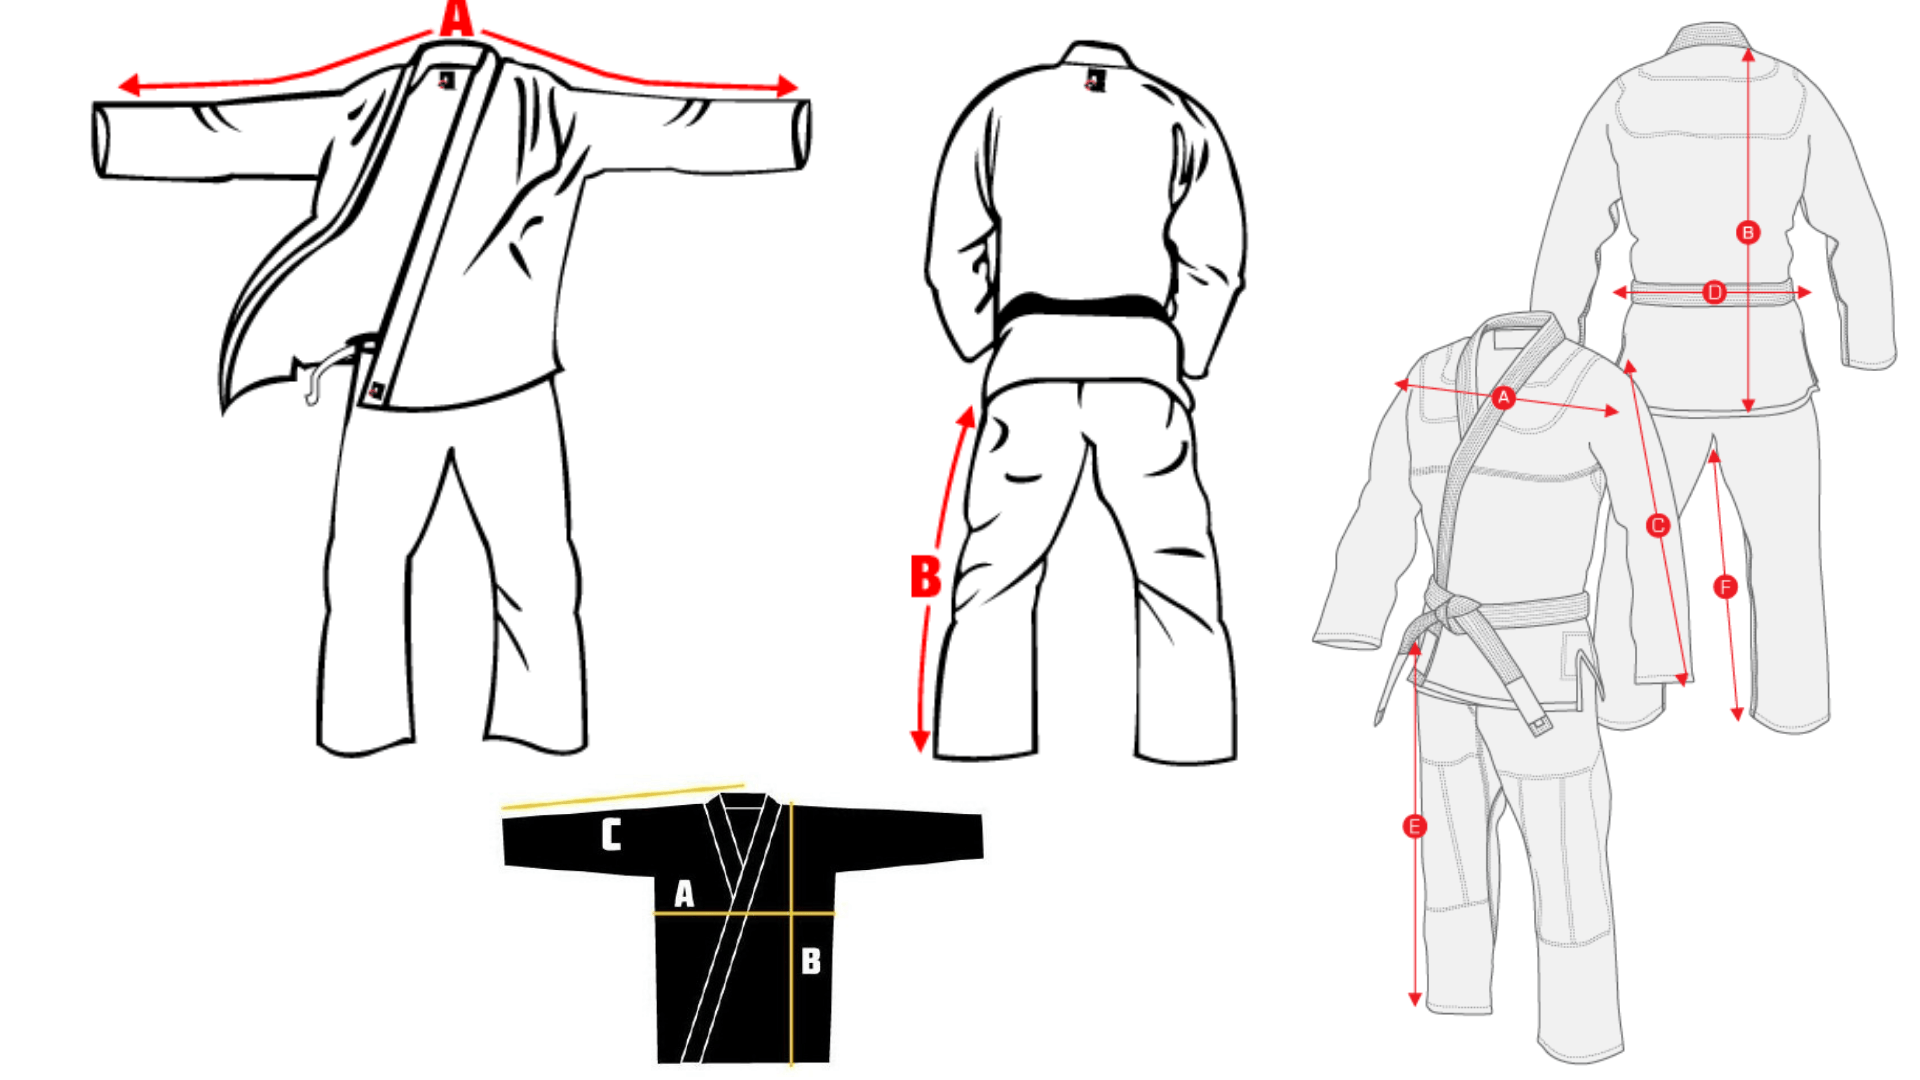 Jiu Jitsu Gi Sizes - Variations in Measurement Approaches